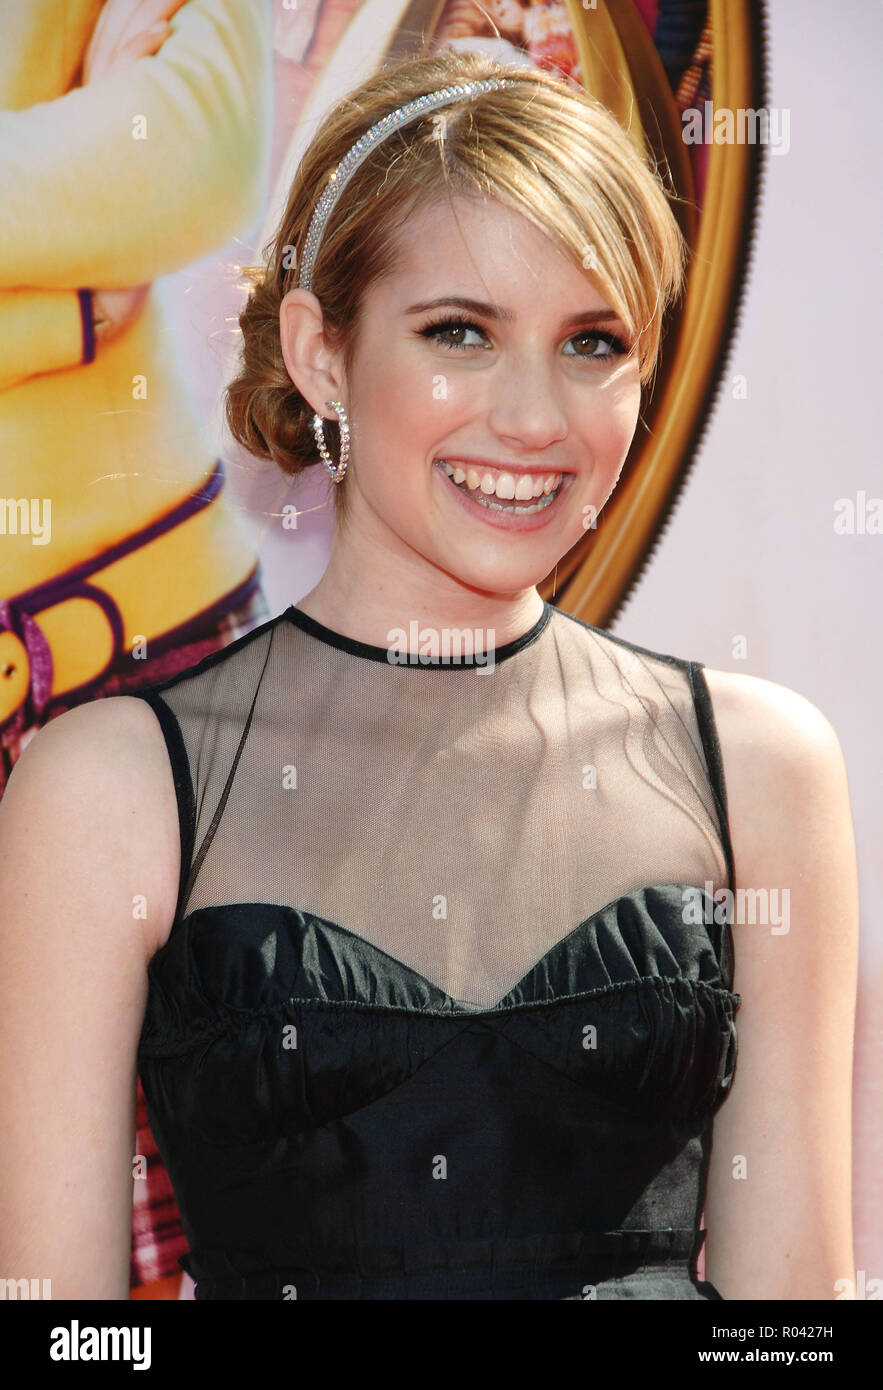 Emma Roberts Arriving At The Nancy Drew Premiere At The Chinese Theatre In Los Angeles Headshot Eye Contact Smile Black Dressrobertsemma 194 Red Carpet Event Vertical Usa Film Industry Celebrities Photography Bestof